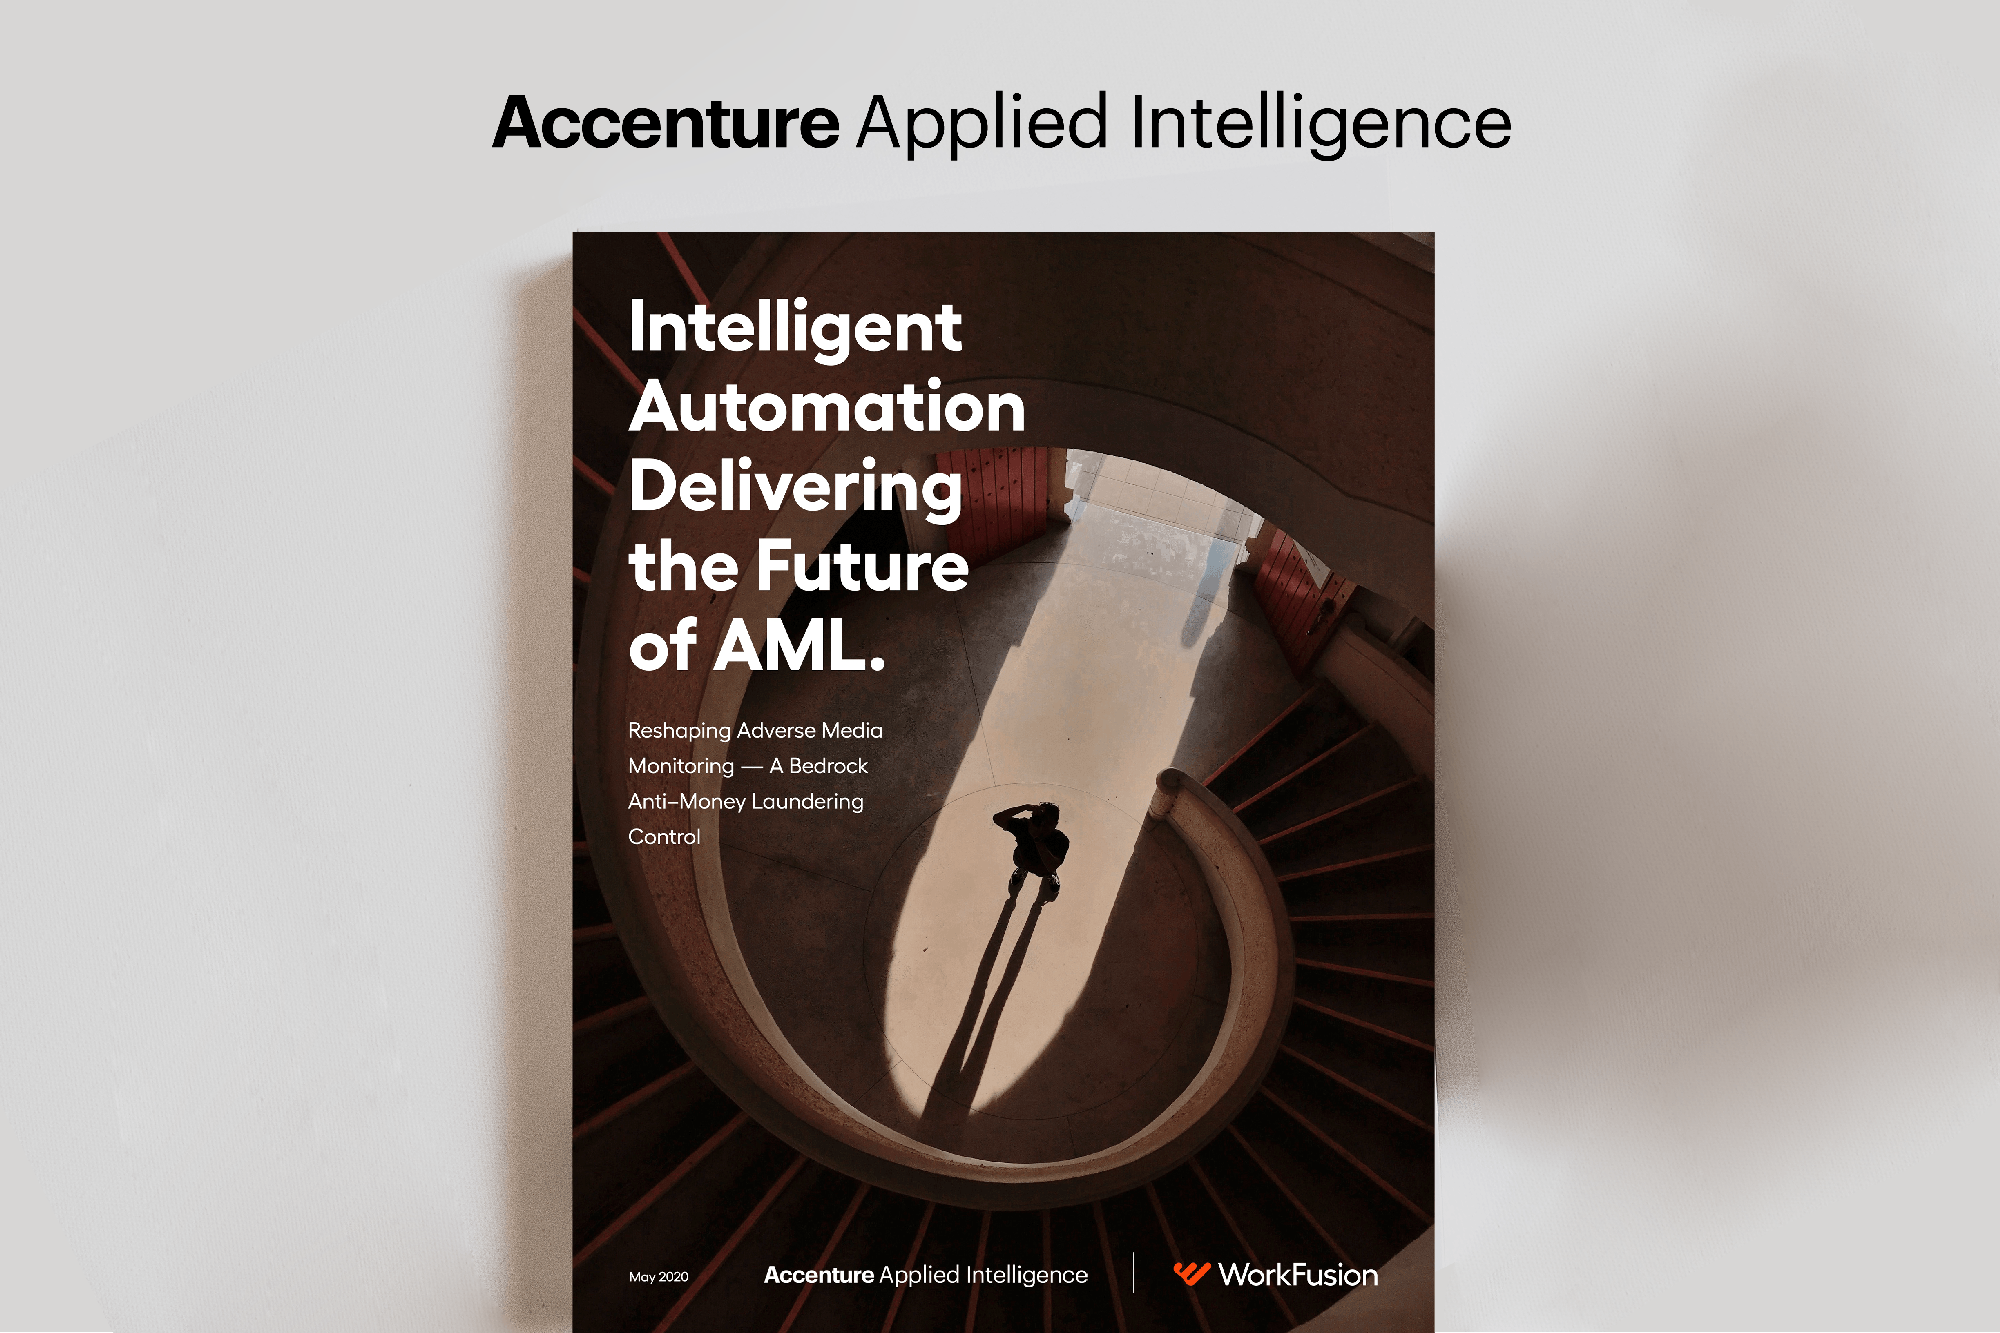 IA delivering the future of AML